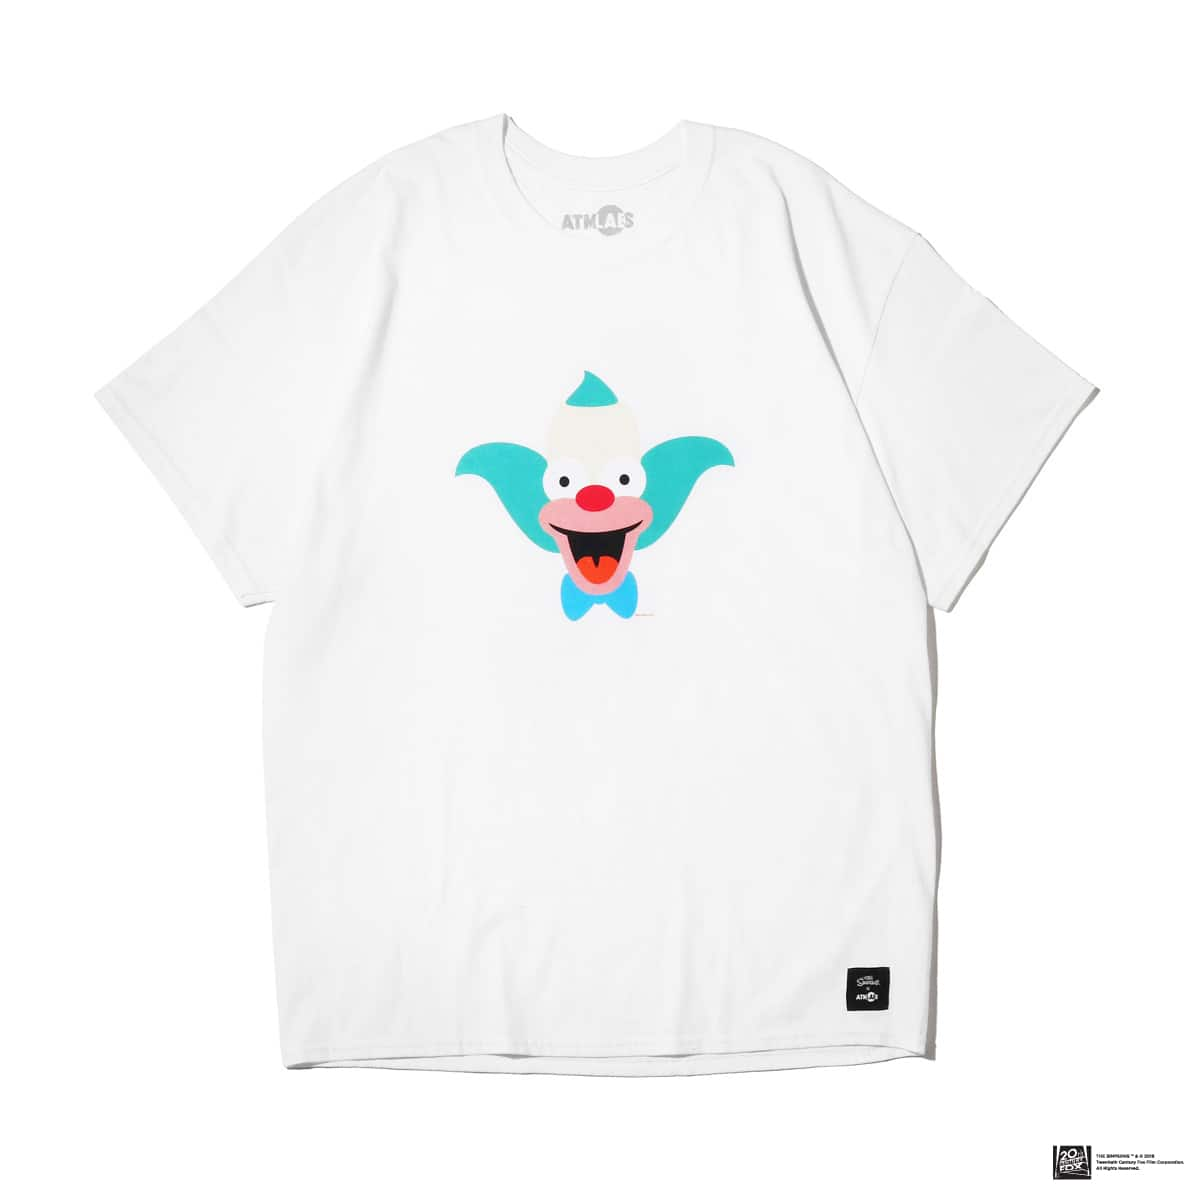 ATMOS LAB THE SIMPSONS x ATMOS LAB KRUSTY TEE  WHITE_photo_large